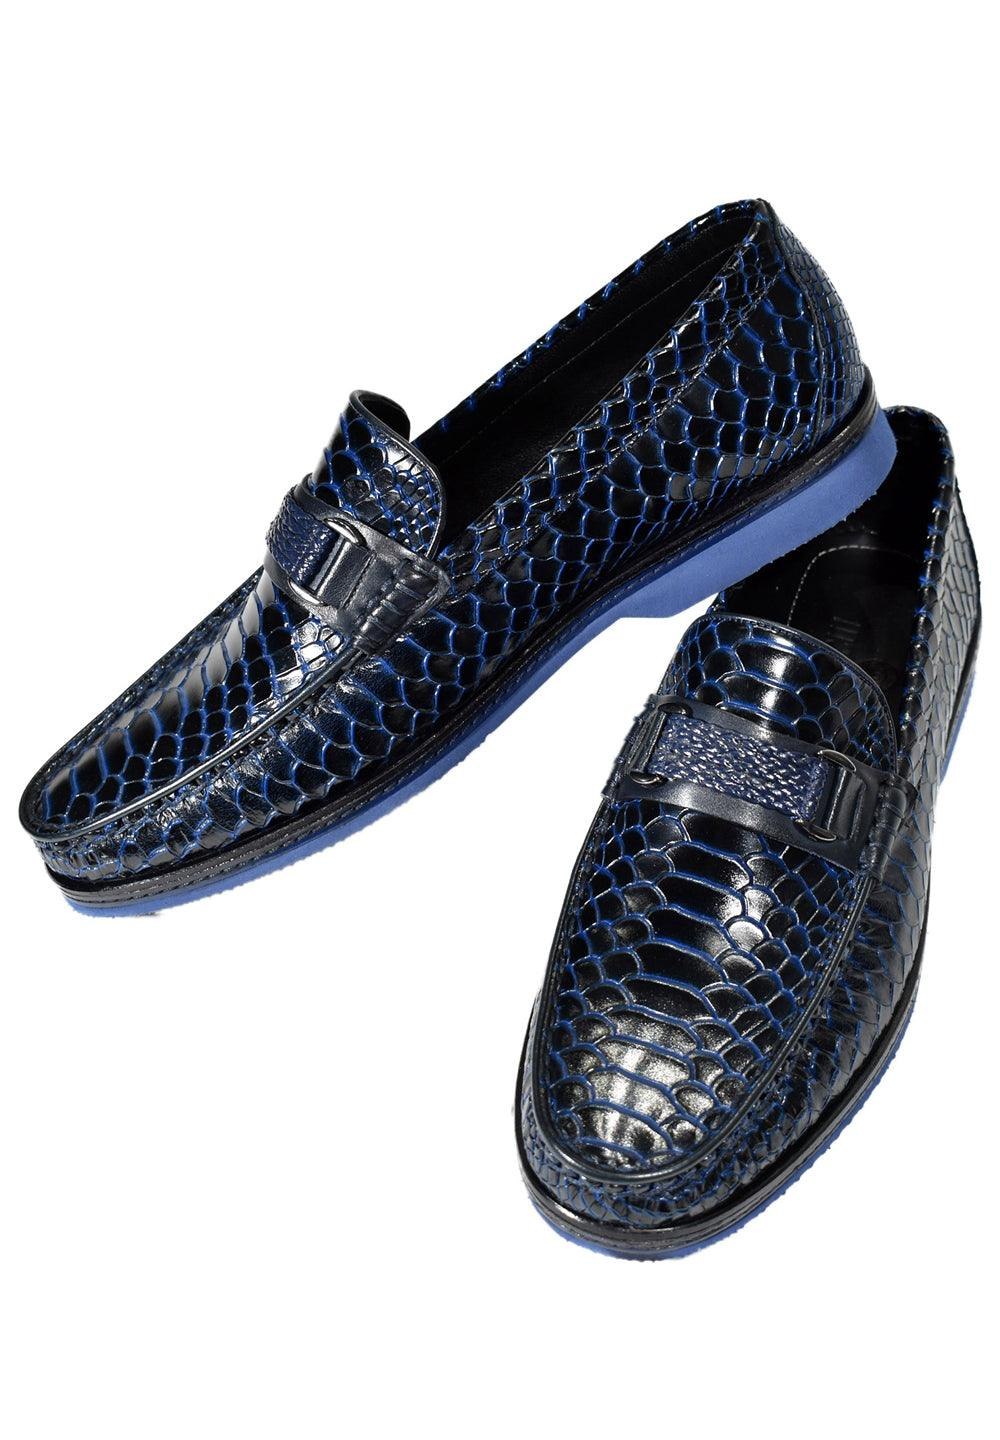 Marcello Stamped Python Shoes. Make a statement in this shaded python pattern on stamped leather. Unique braided hardware adds style. Lightweight comfort with a rubber sport sole. Classic fit. Shoes come with shoe trees, shoe horn and suede bag.